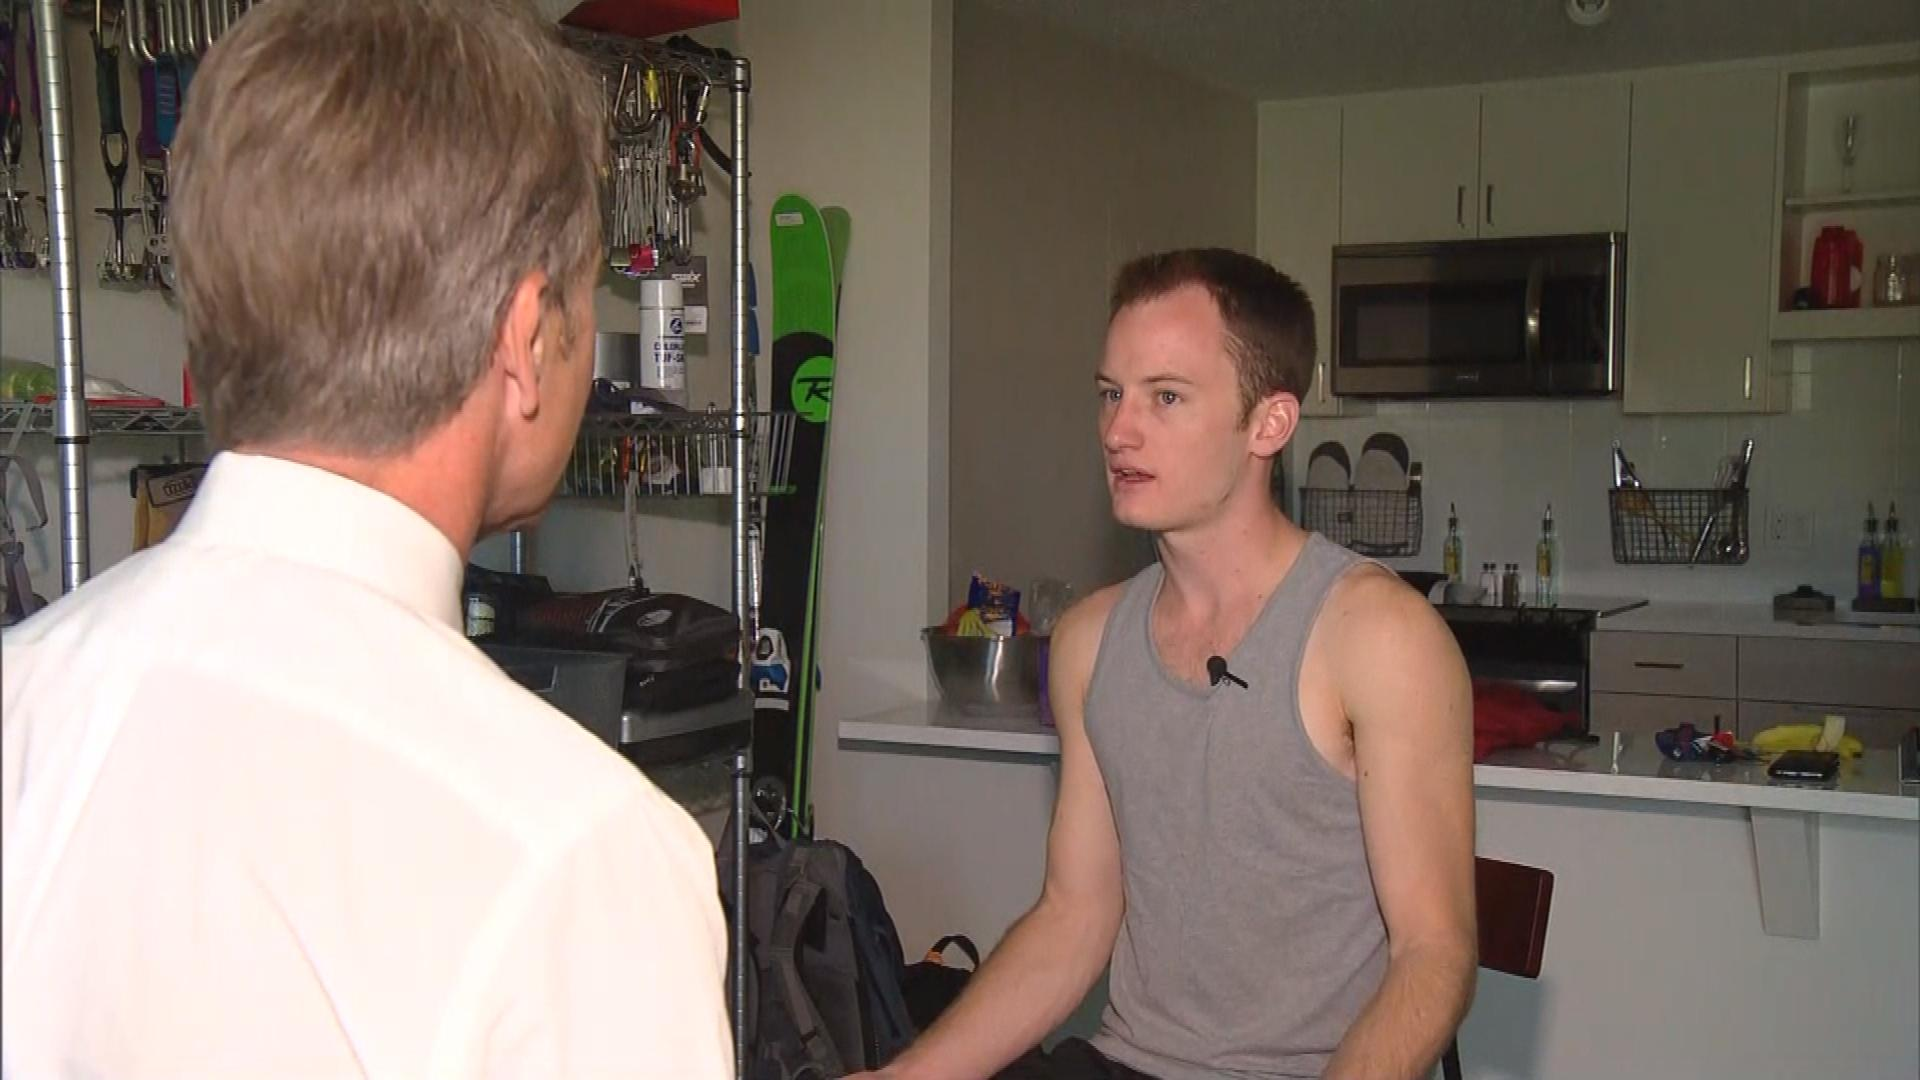 CBS4's Tom Mustin interviews tenant James Cranston (credit: CBS)